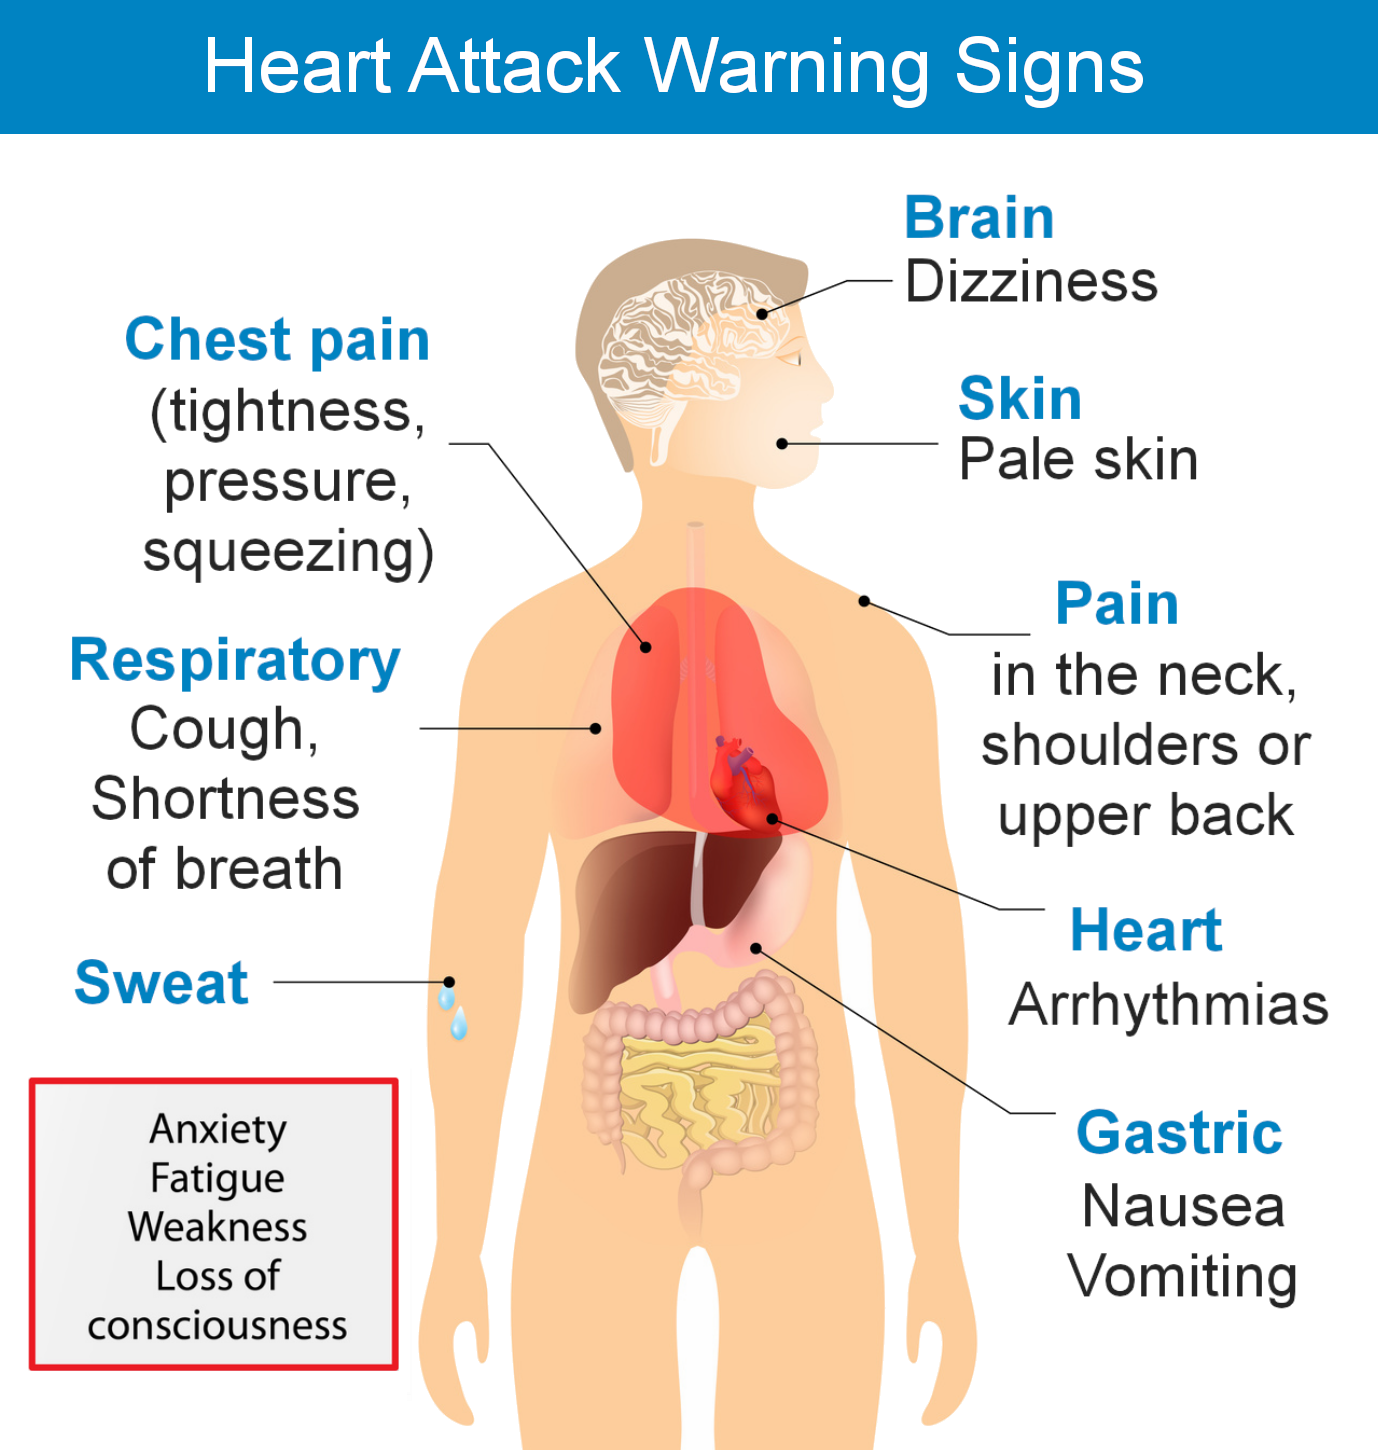 Heart standard first aid online certification course heart attack heart attack symptoms heart attack warning signs and care heart attack 1betcityfo Gallery